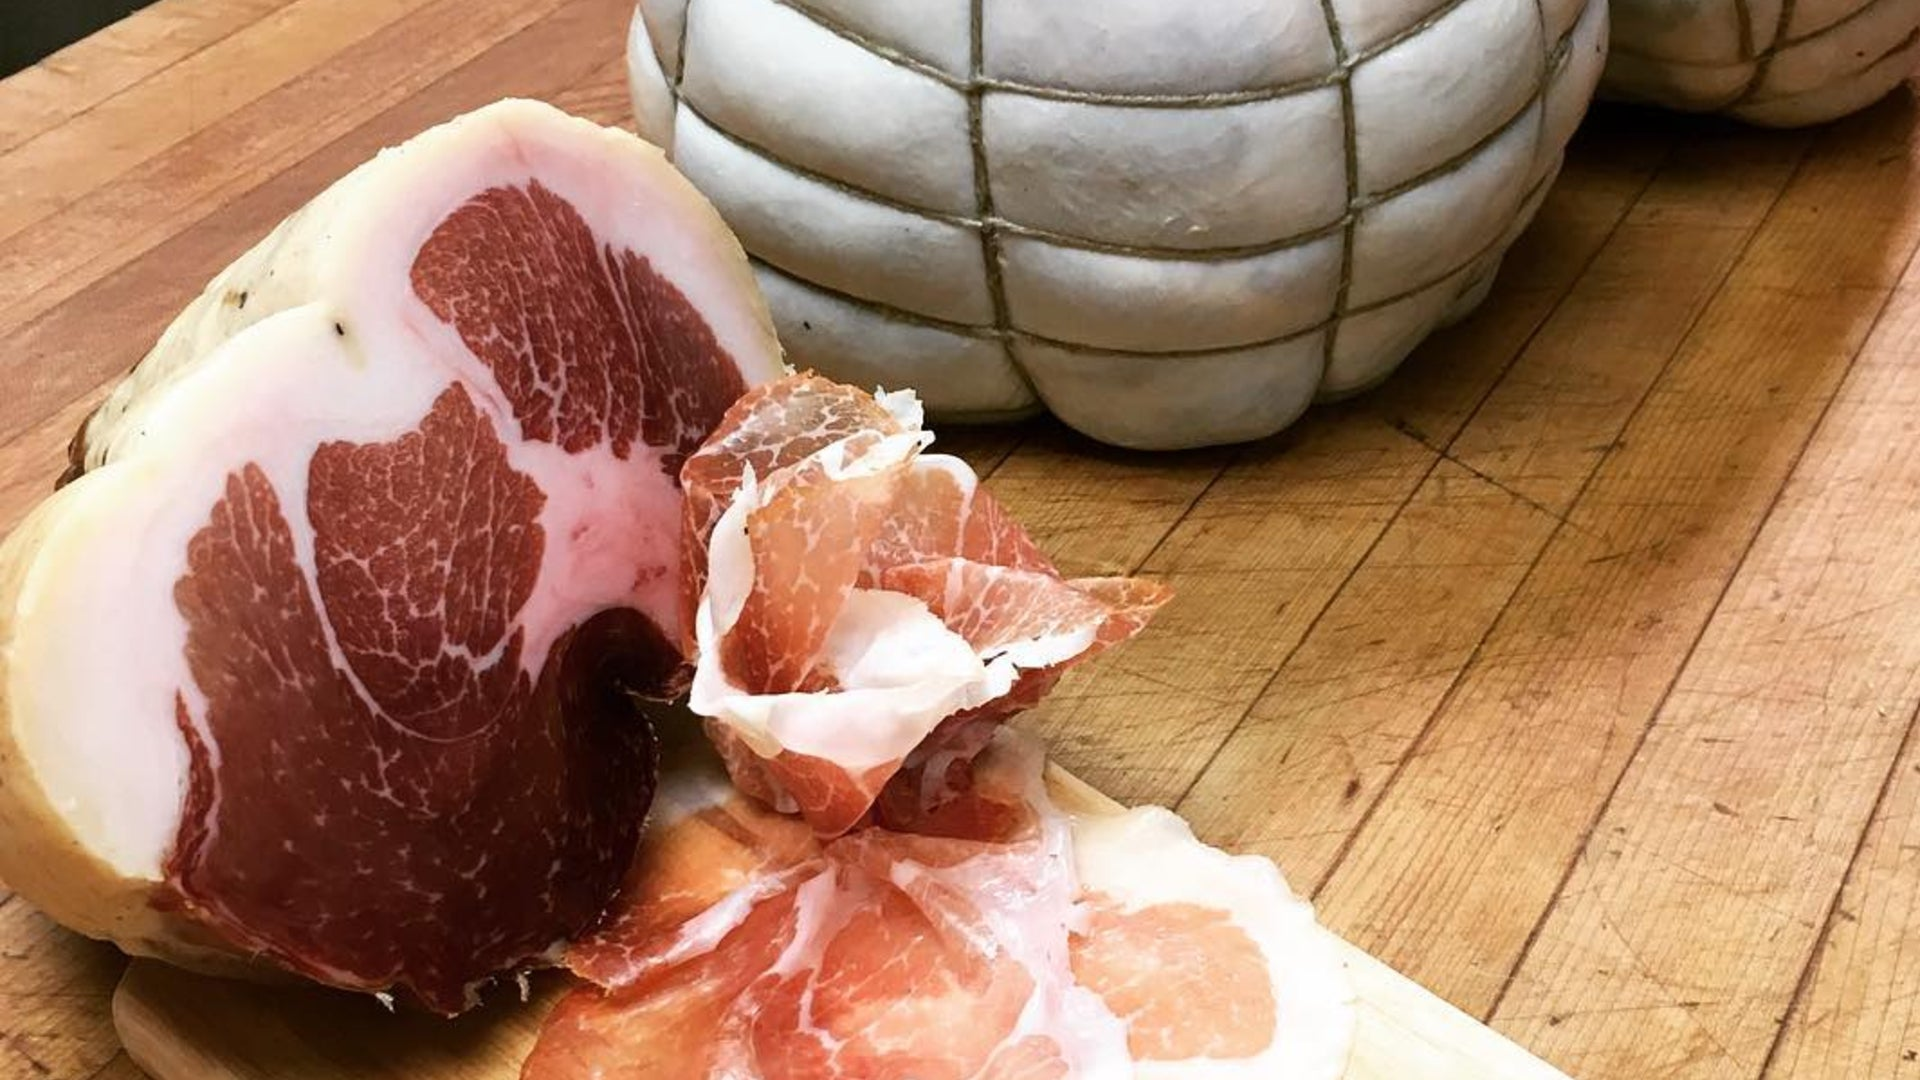 Culatello meat on a butcher table with several slices of the meat next to the whole chub.